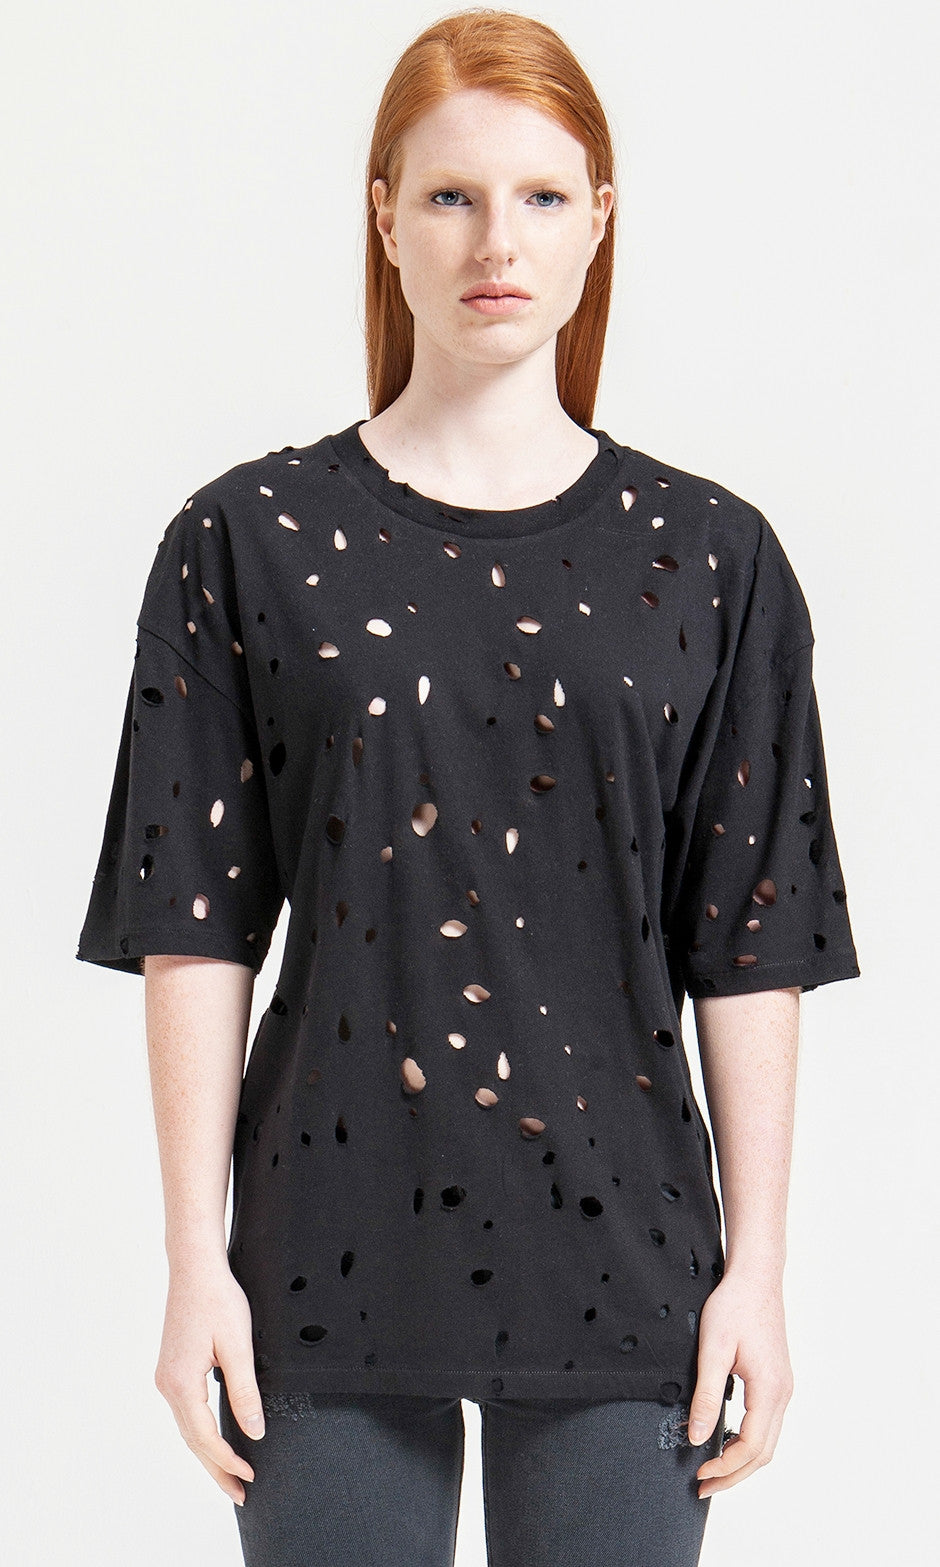 Short Sleeve Round Neck Perforated Destroyed & Slashed Viscose Tshirt